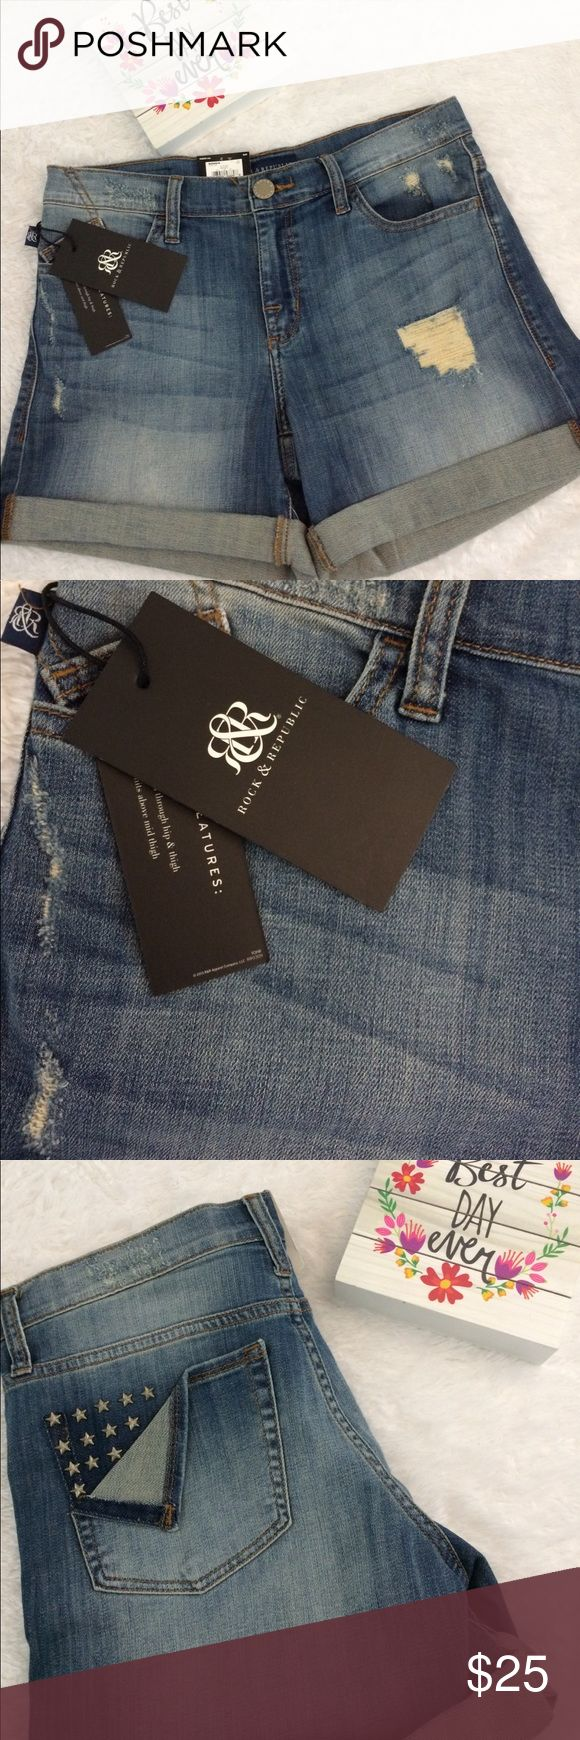 New With Tags Rock & Republic Jean Shorts Size 10 Brand New With Tags Rock & Republic Jean Shorts • Size 10 • Factory Distressed • Studded Back Pocket Detail • 98 % Cotton 2 % Elastane • I have a pair of these myself and absolutely LOVE them ..the fit is great with just the right amount of stretch • All orders ship same business day • FREE SHIPPING SALE on all orders of $40 or more including bundles • Be sure to comment if you are taking part in the shipping sale so I can set up a separate…